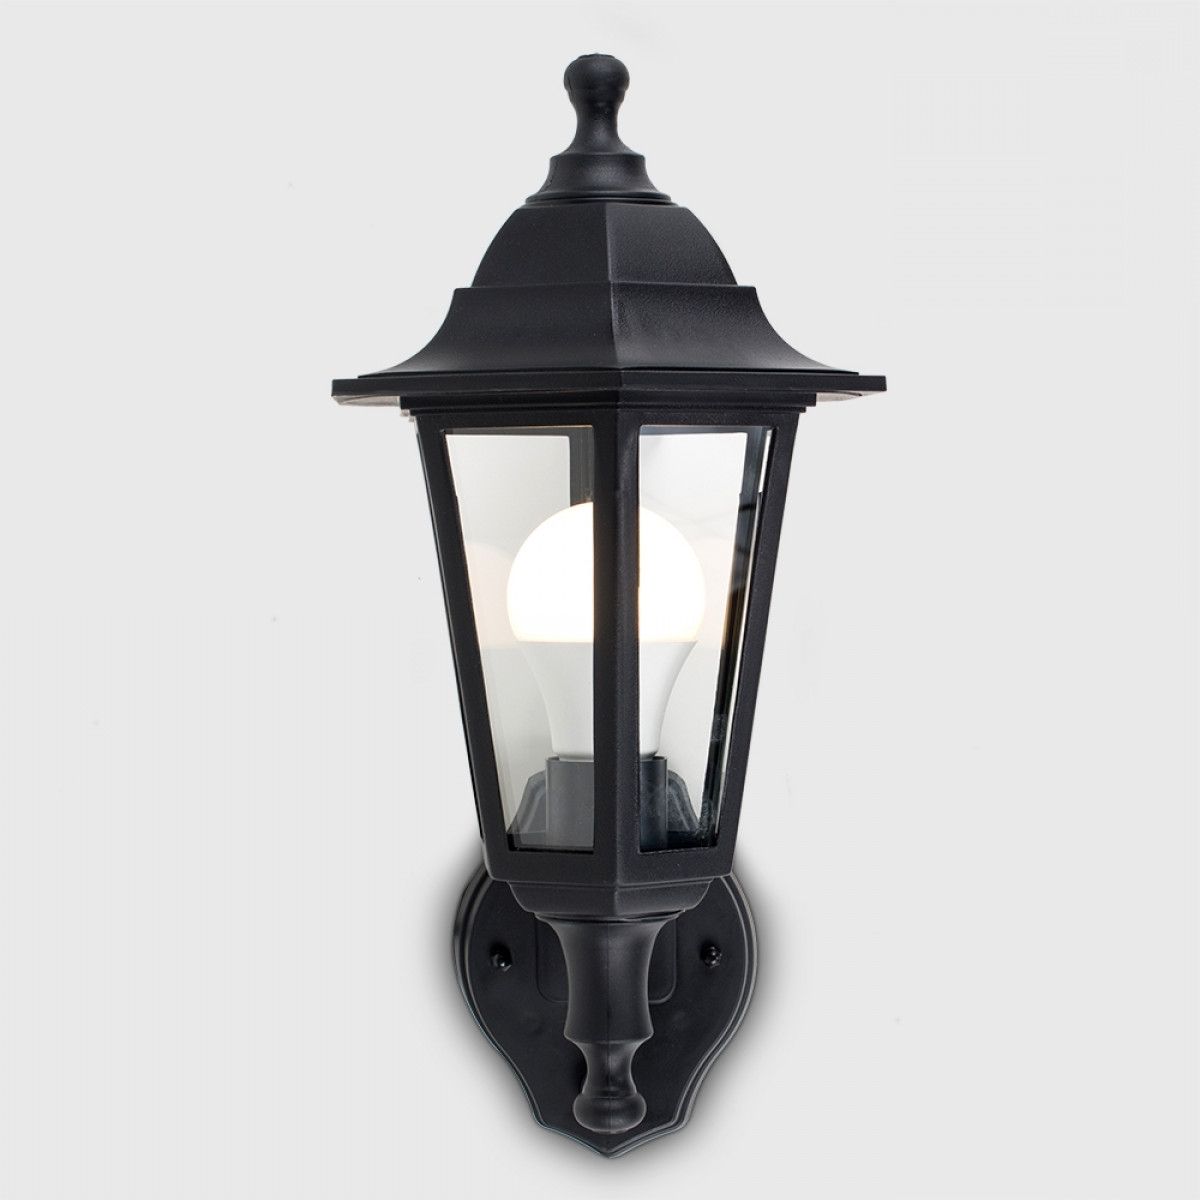 Newest Outdoor Lanterns With Pir Pertaining To Black Mayfair Pir Ip44 Outdoor Lantern (View 10 of 20)